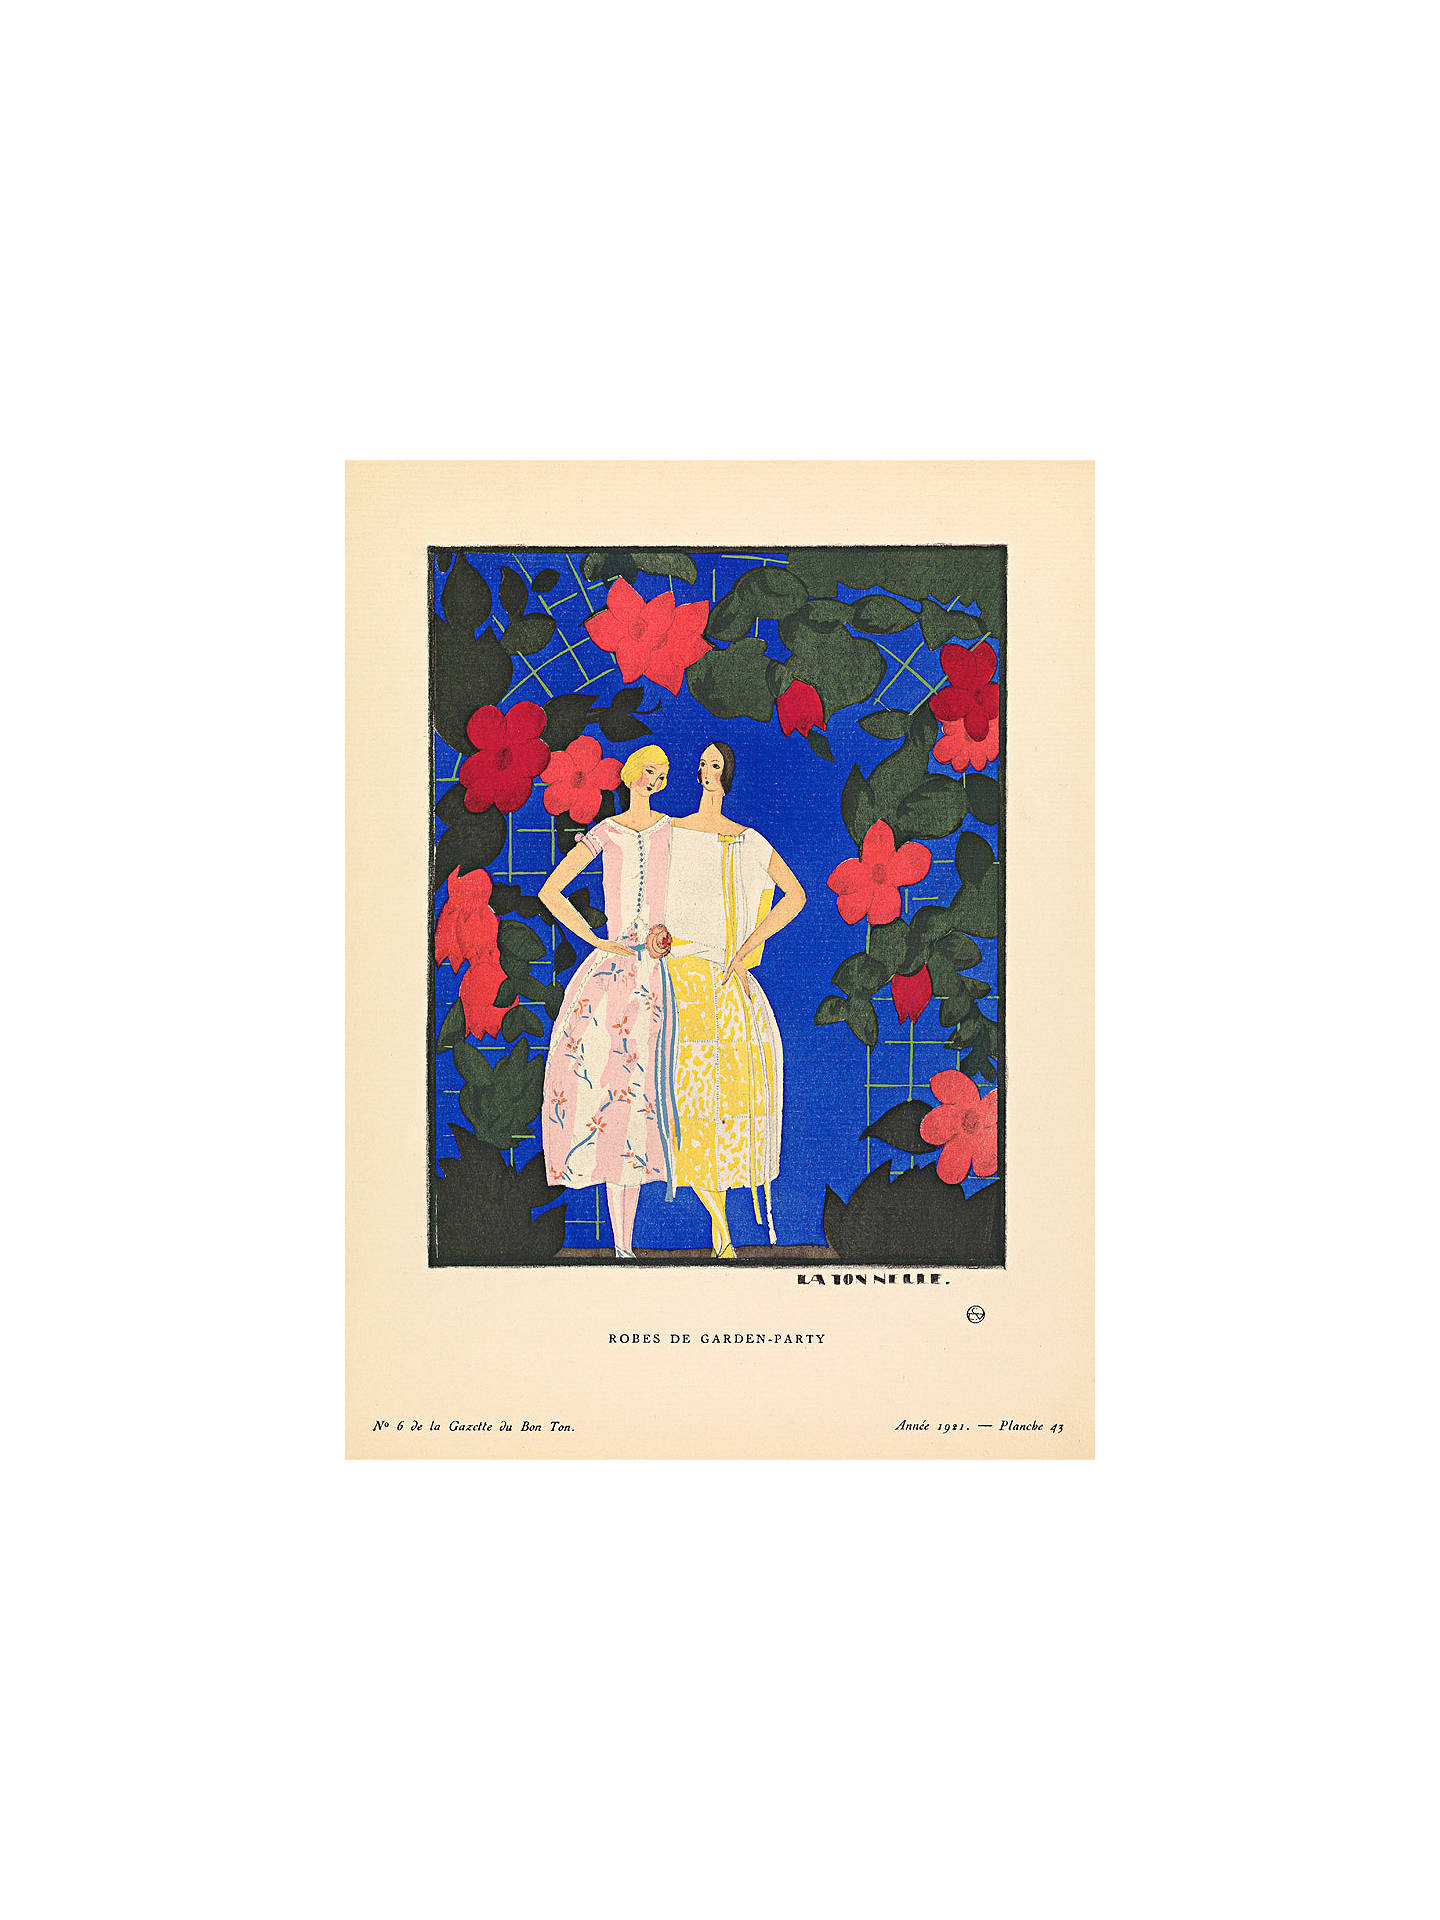 The Courtauld Gallery Gazette Du Bon Ton No6 1921 Robes De Garden Party Print 50 X 40cm Stretched Canvas